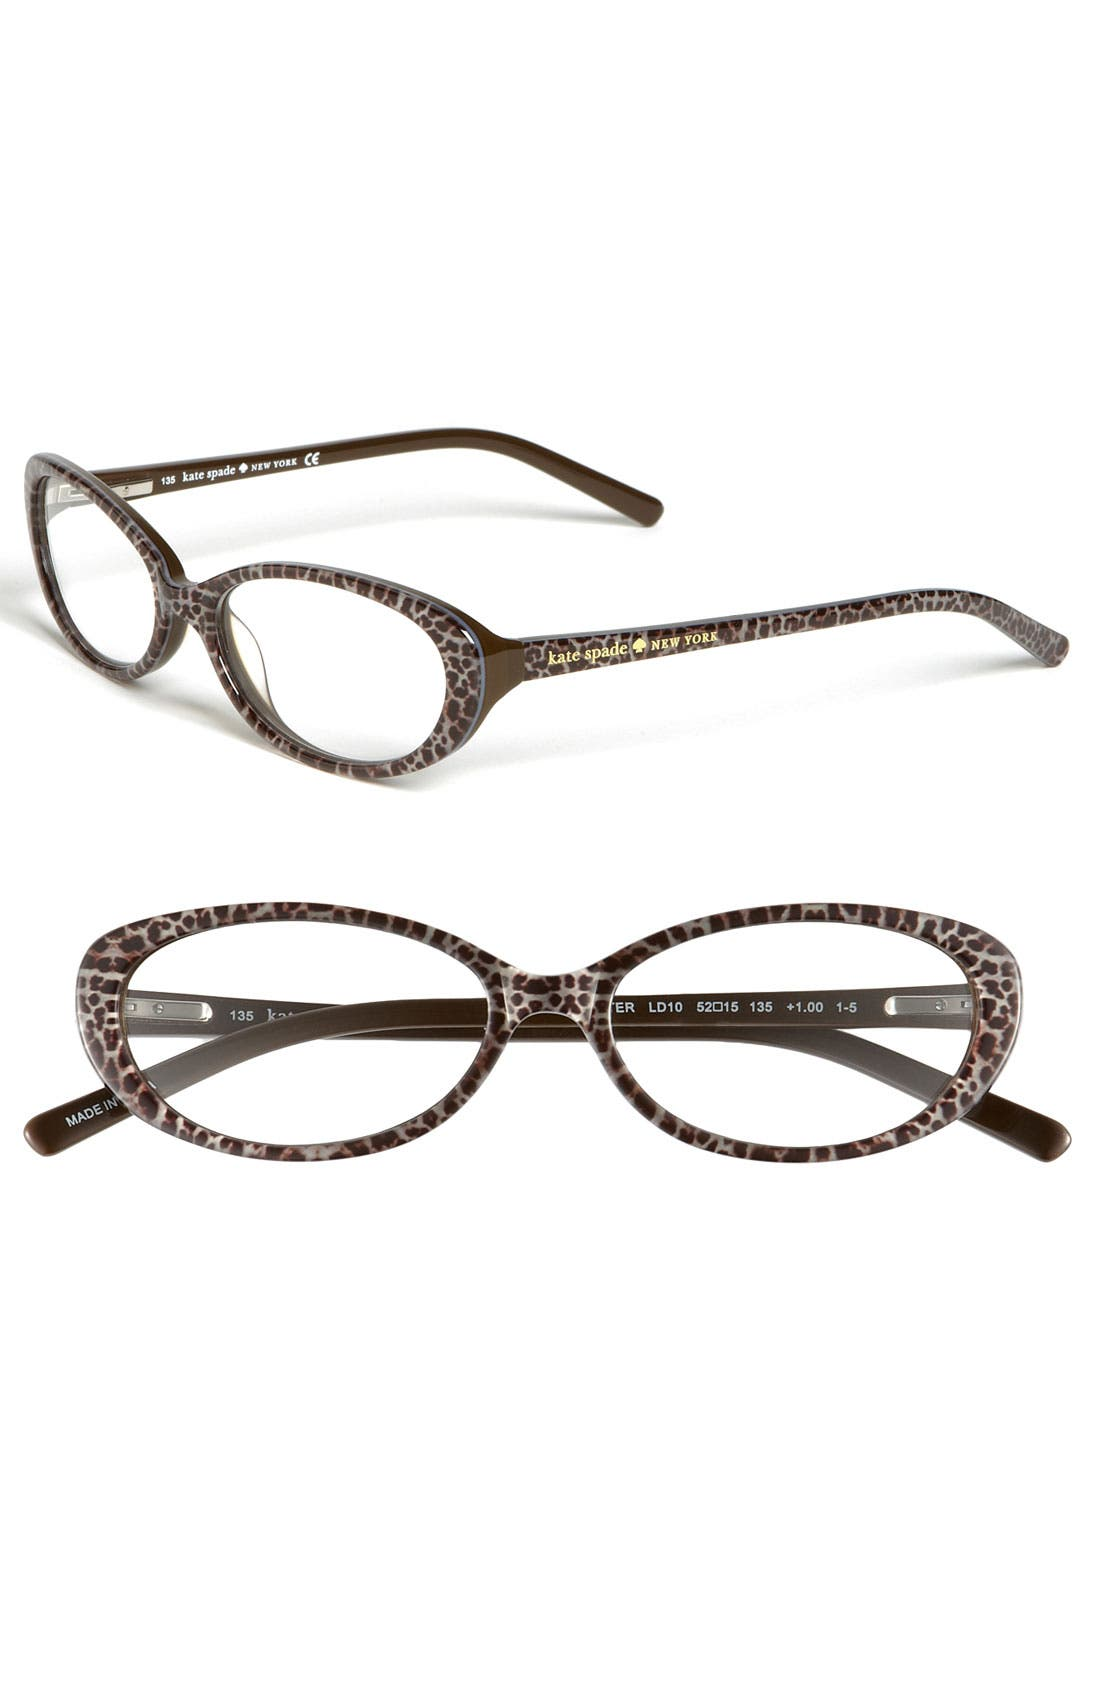 Alternate Image 1 Selected - kate spade new york 'hester' reading glasses (2 for $88)